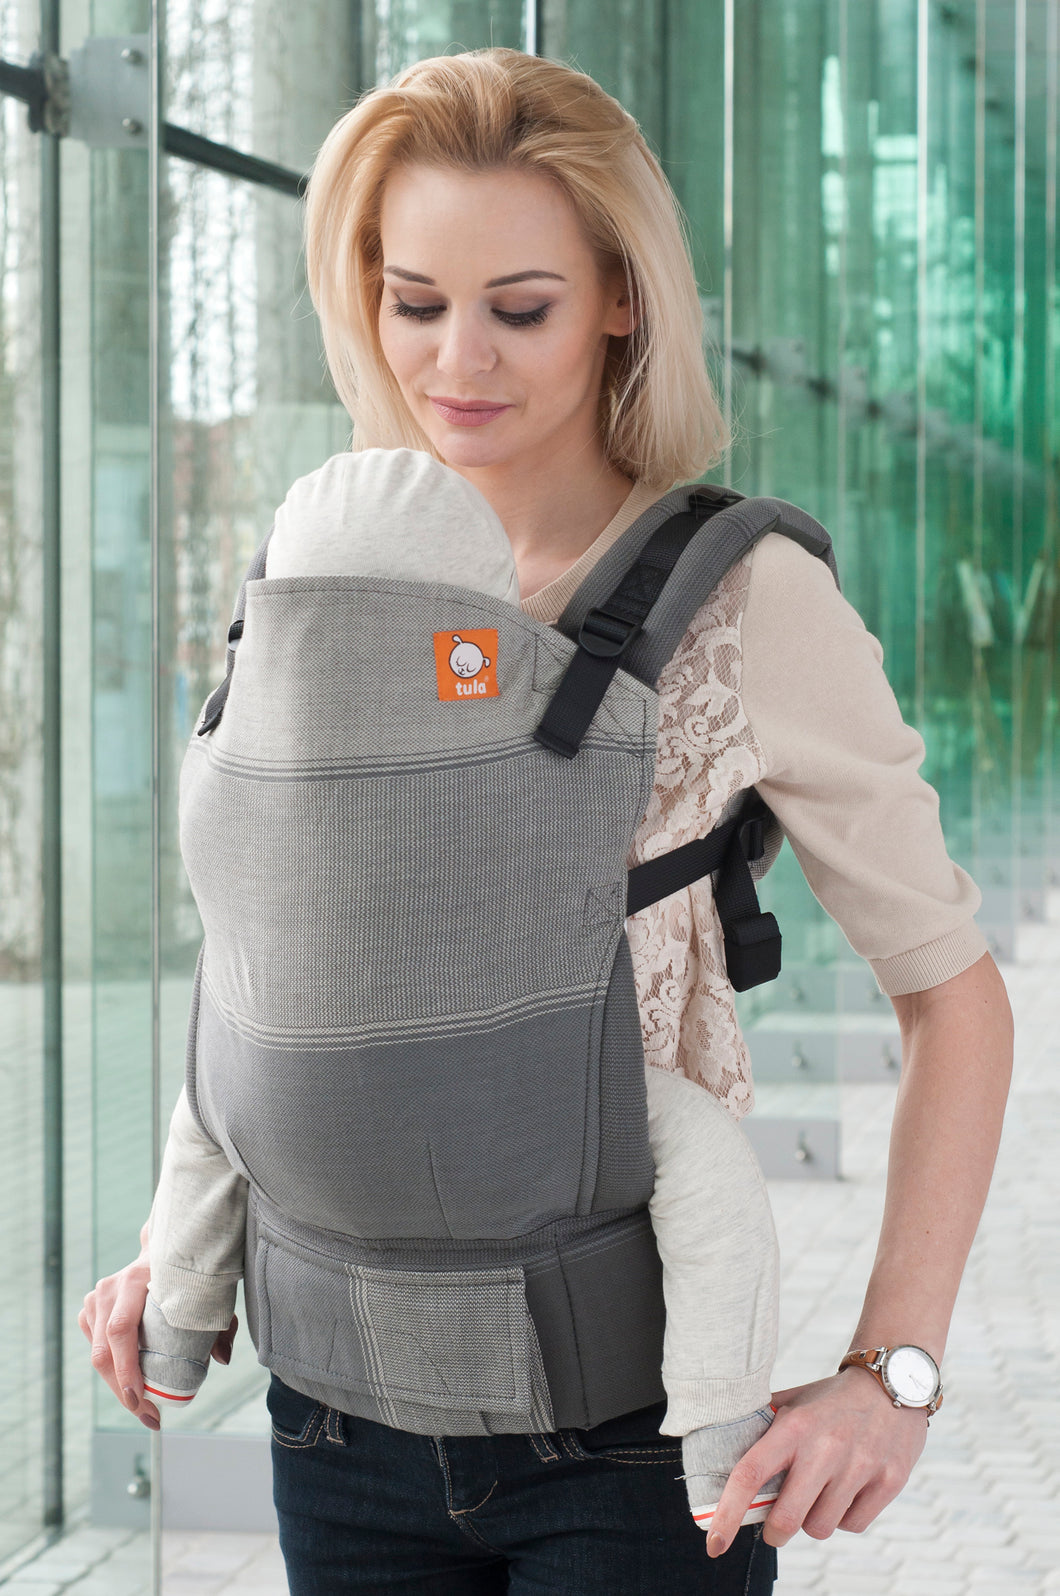 Girasol No. 36 - Tula Signature Baby Carrier